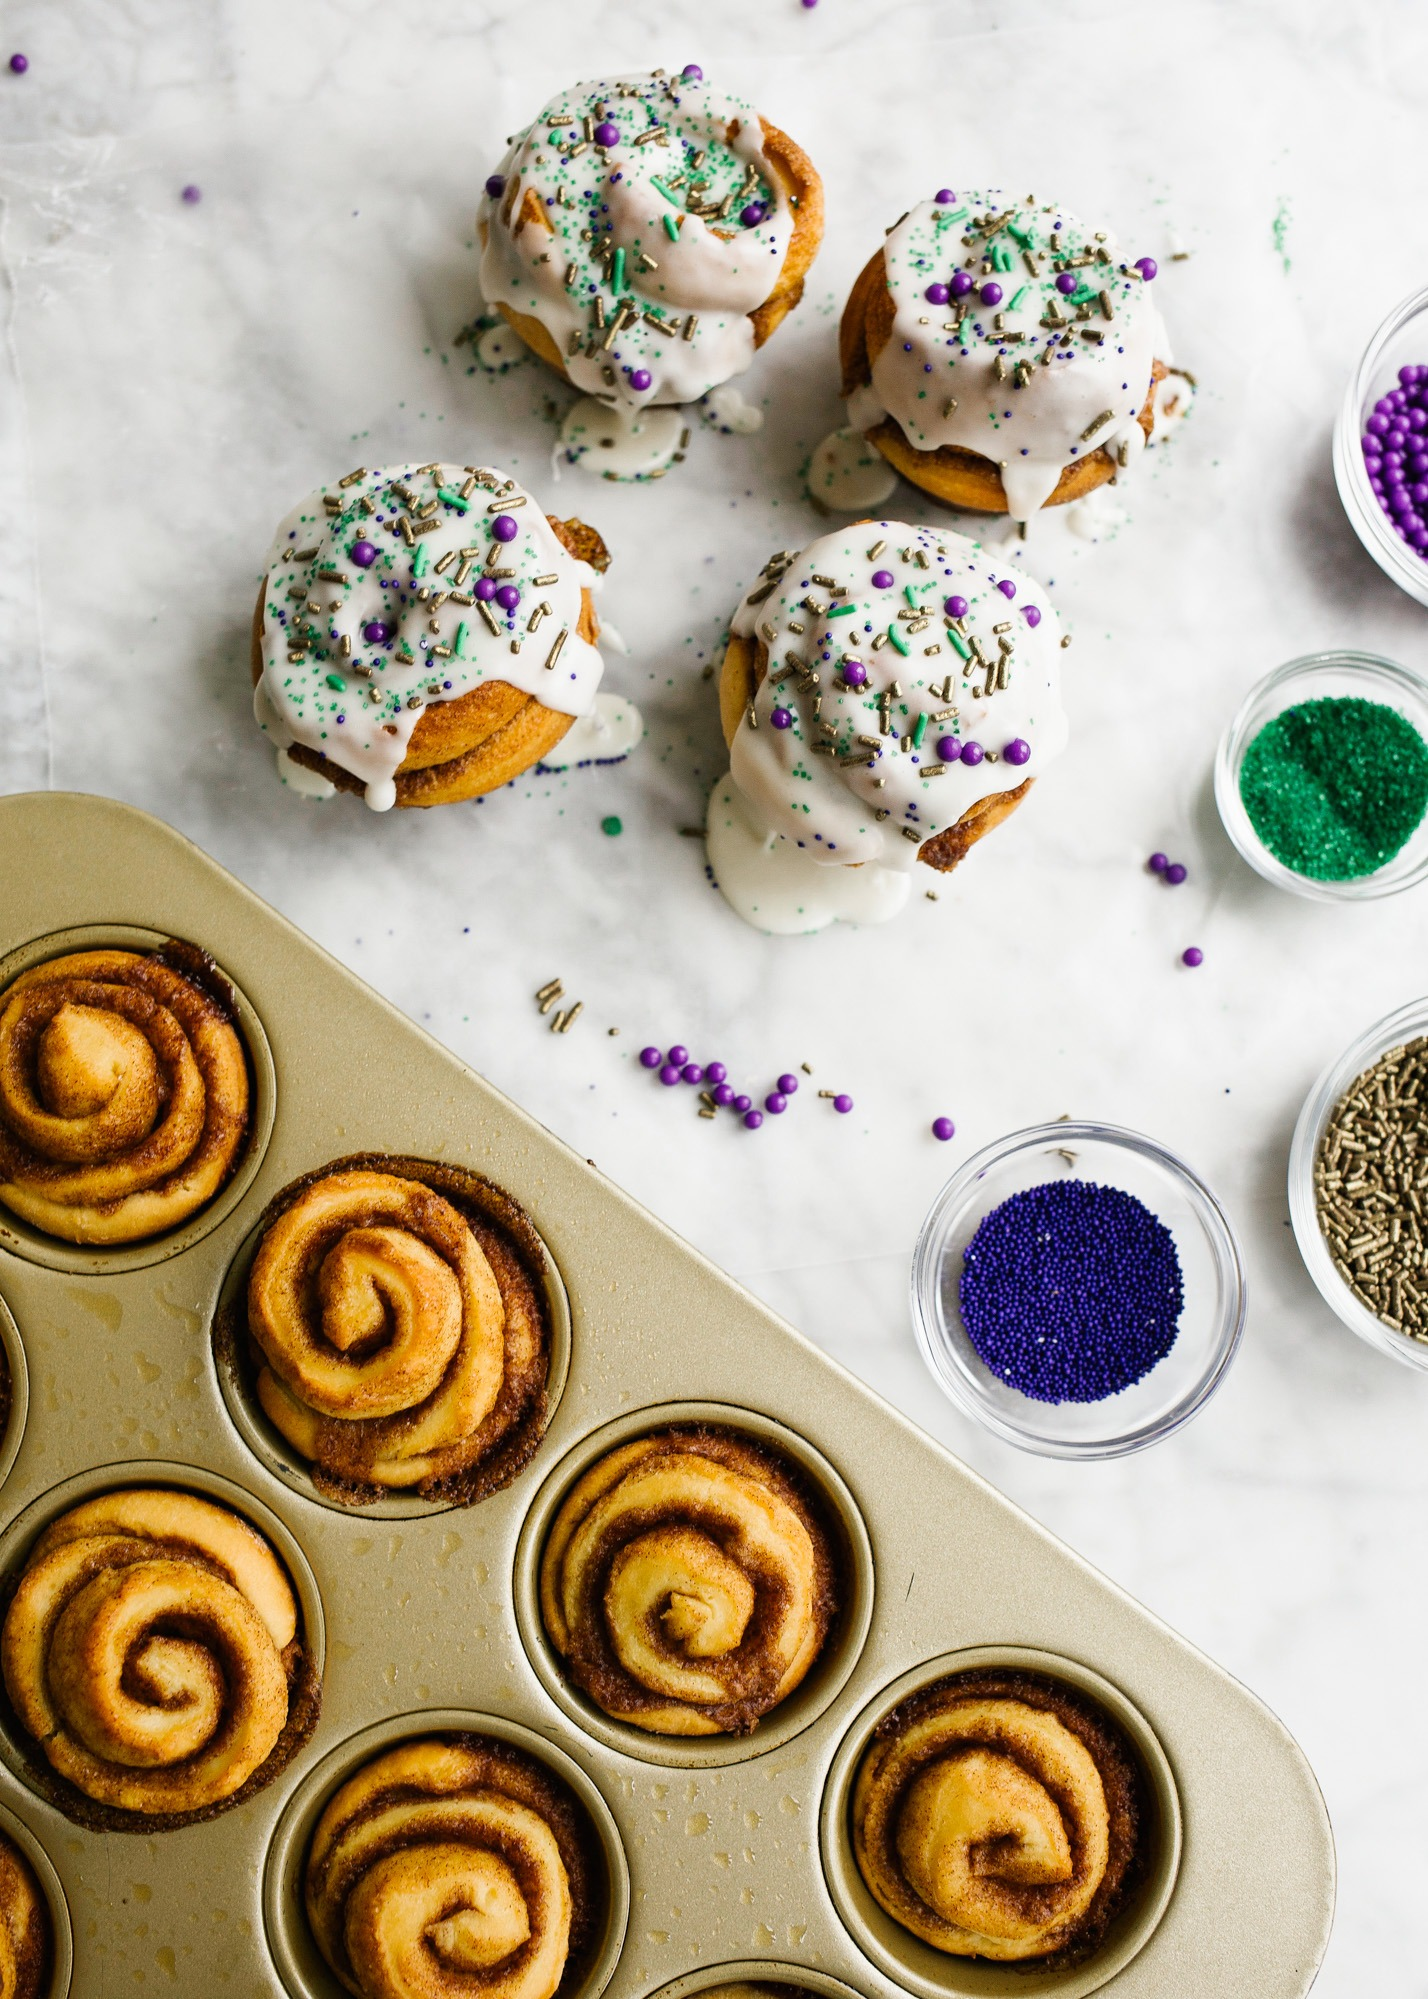 King Cake Cinnamon Rolls by Wood and Spoon blog. This is a recipe for brioche style cinnamon rolls filled with a cinnamon brown sugar filling and topped with a thick or thin powdered sugar icing glaze. Each roll is topped with festive Mardi Gras sprinkles as homage to the original king cakes! Celebrate the mardi gras season with these yummy breakfast or dessert rolls on thewoodandspoon.com